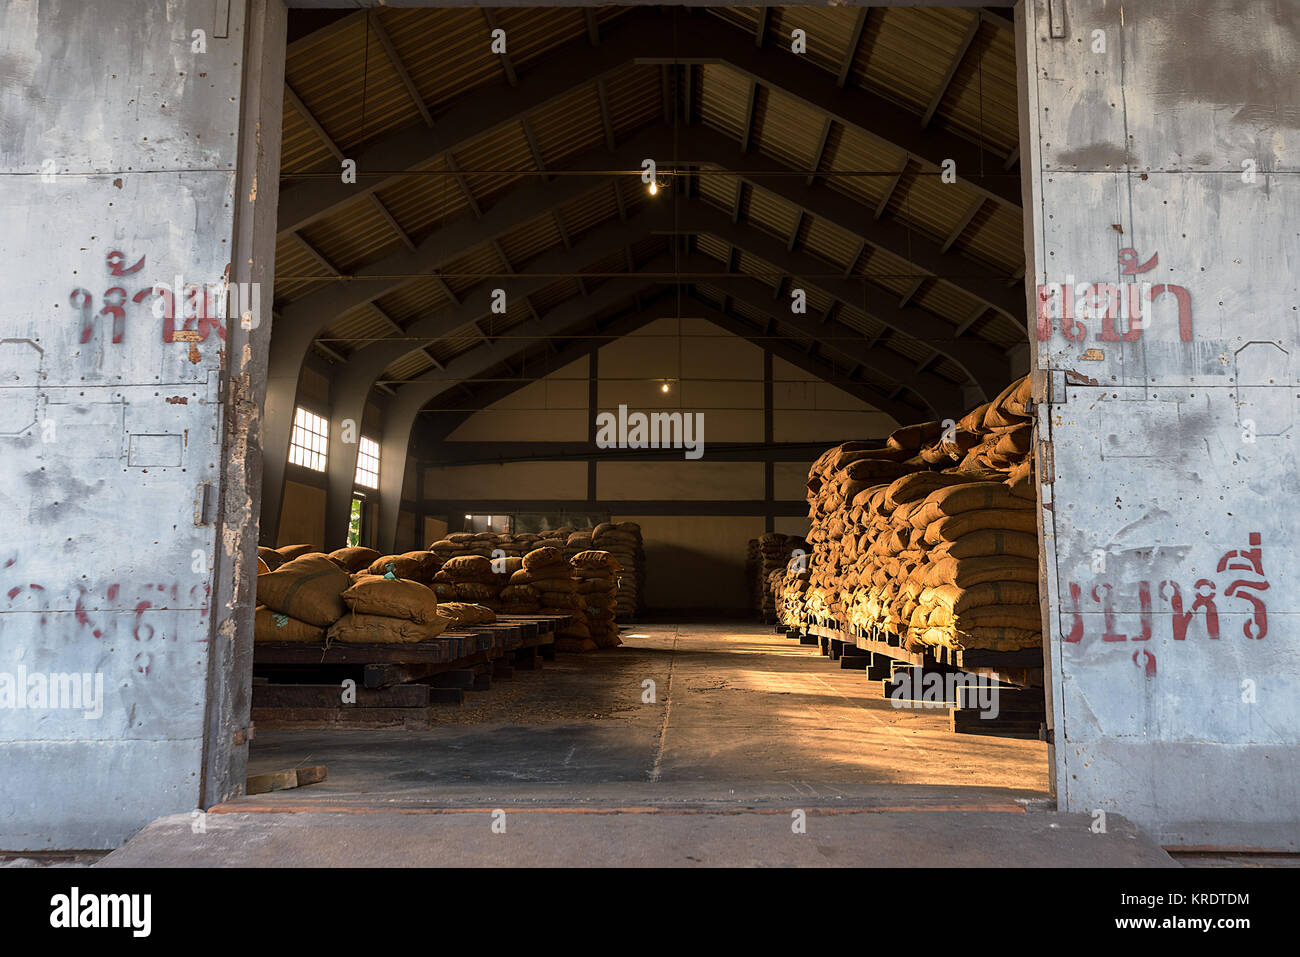 Piled up full hessian sacks awaiting collection in a a large warehouse through an open door. - Stock Image